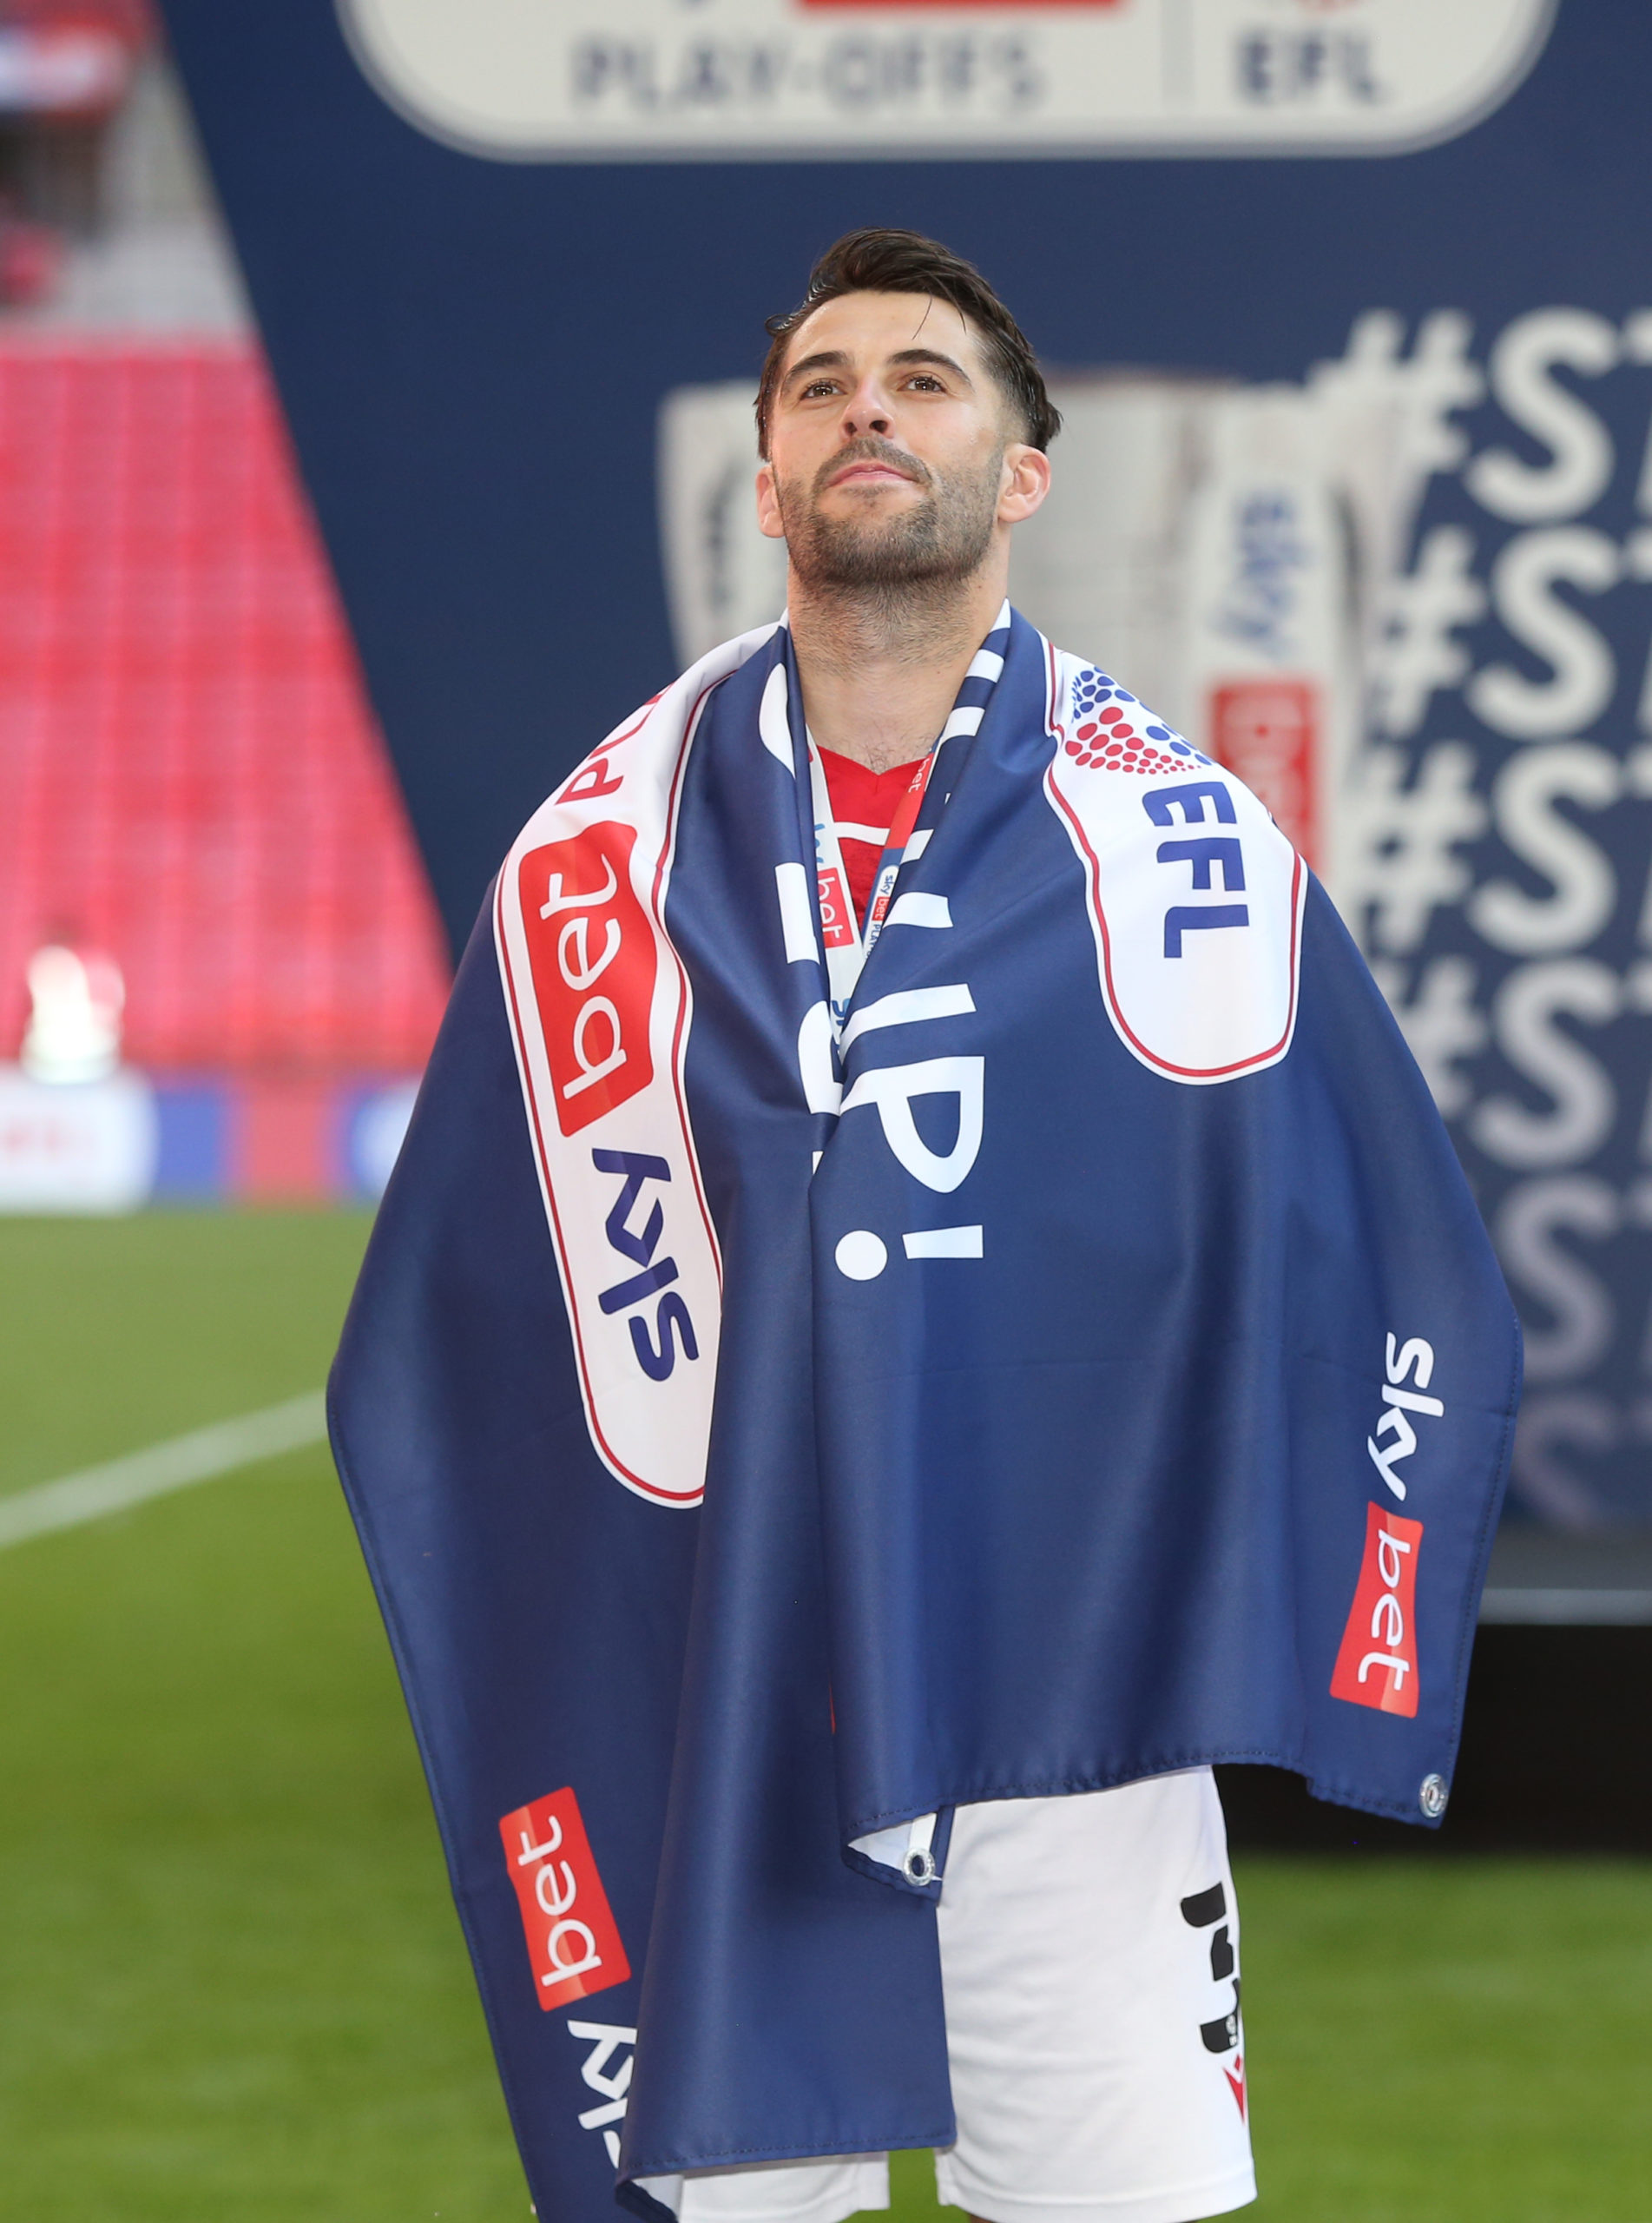 Morecambe v Newport County - Sky Bet League Two Play-off Final